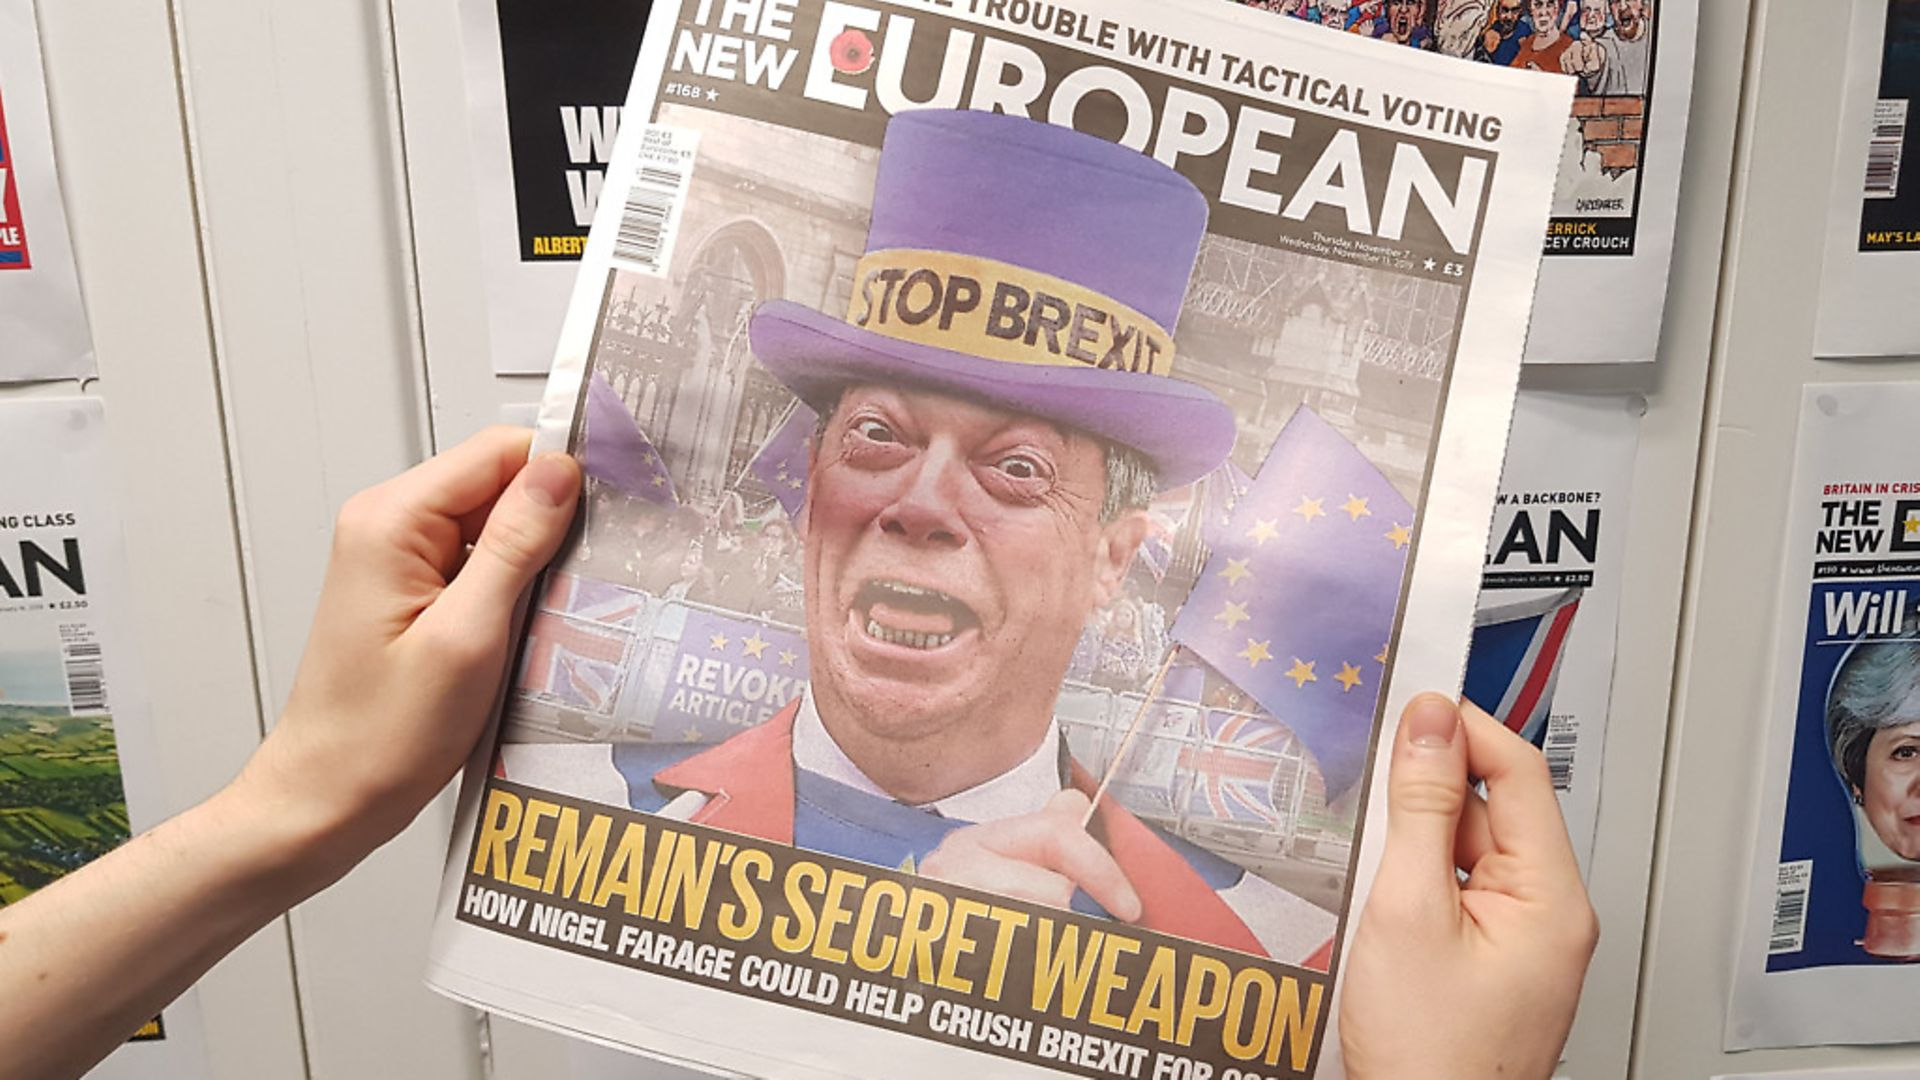 Remain's secret weapon? Nigel Farage pictured on the front of The New European. Photograph: Jonathon Read. - Credit: Archant